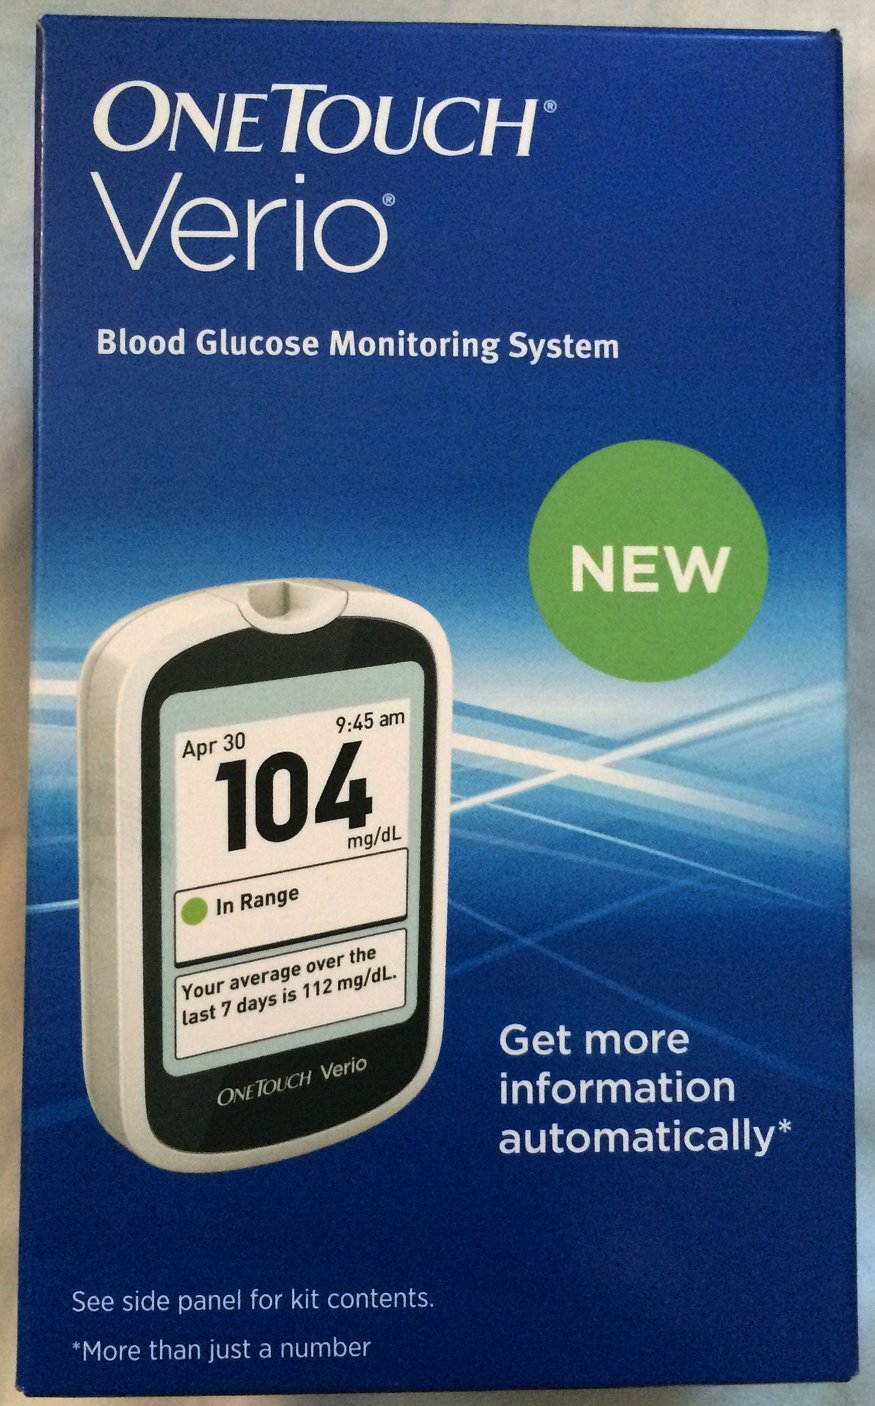 The Most Accurate Blood Glucose Meters On The Market